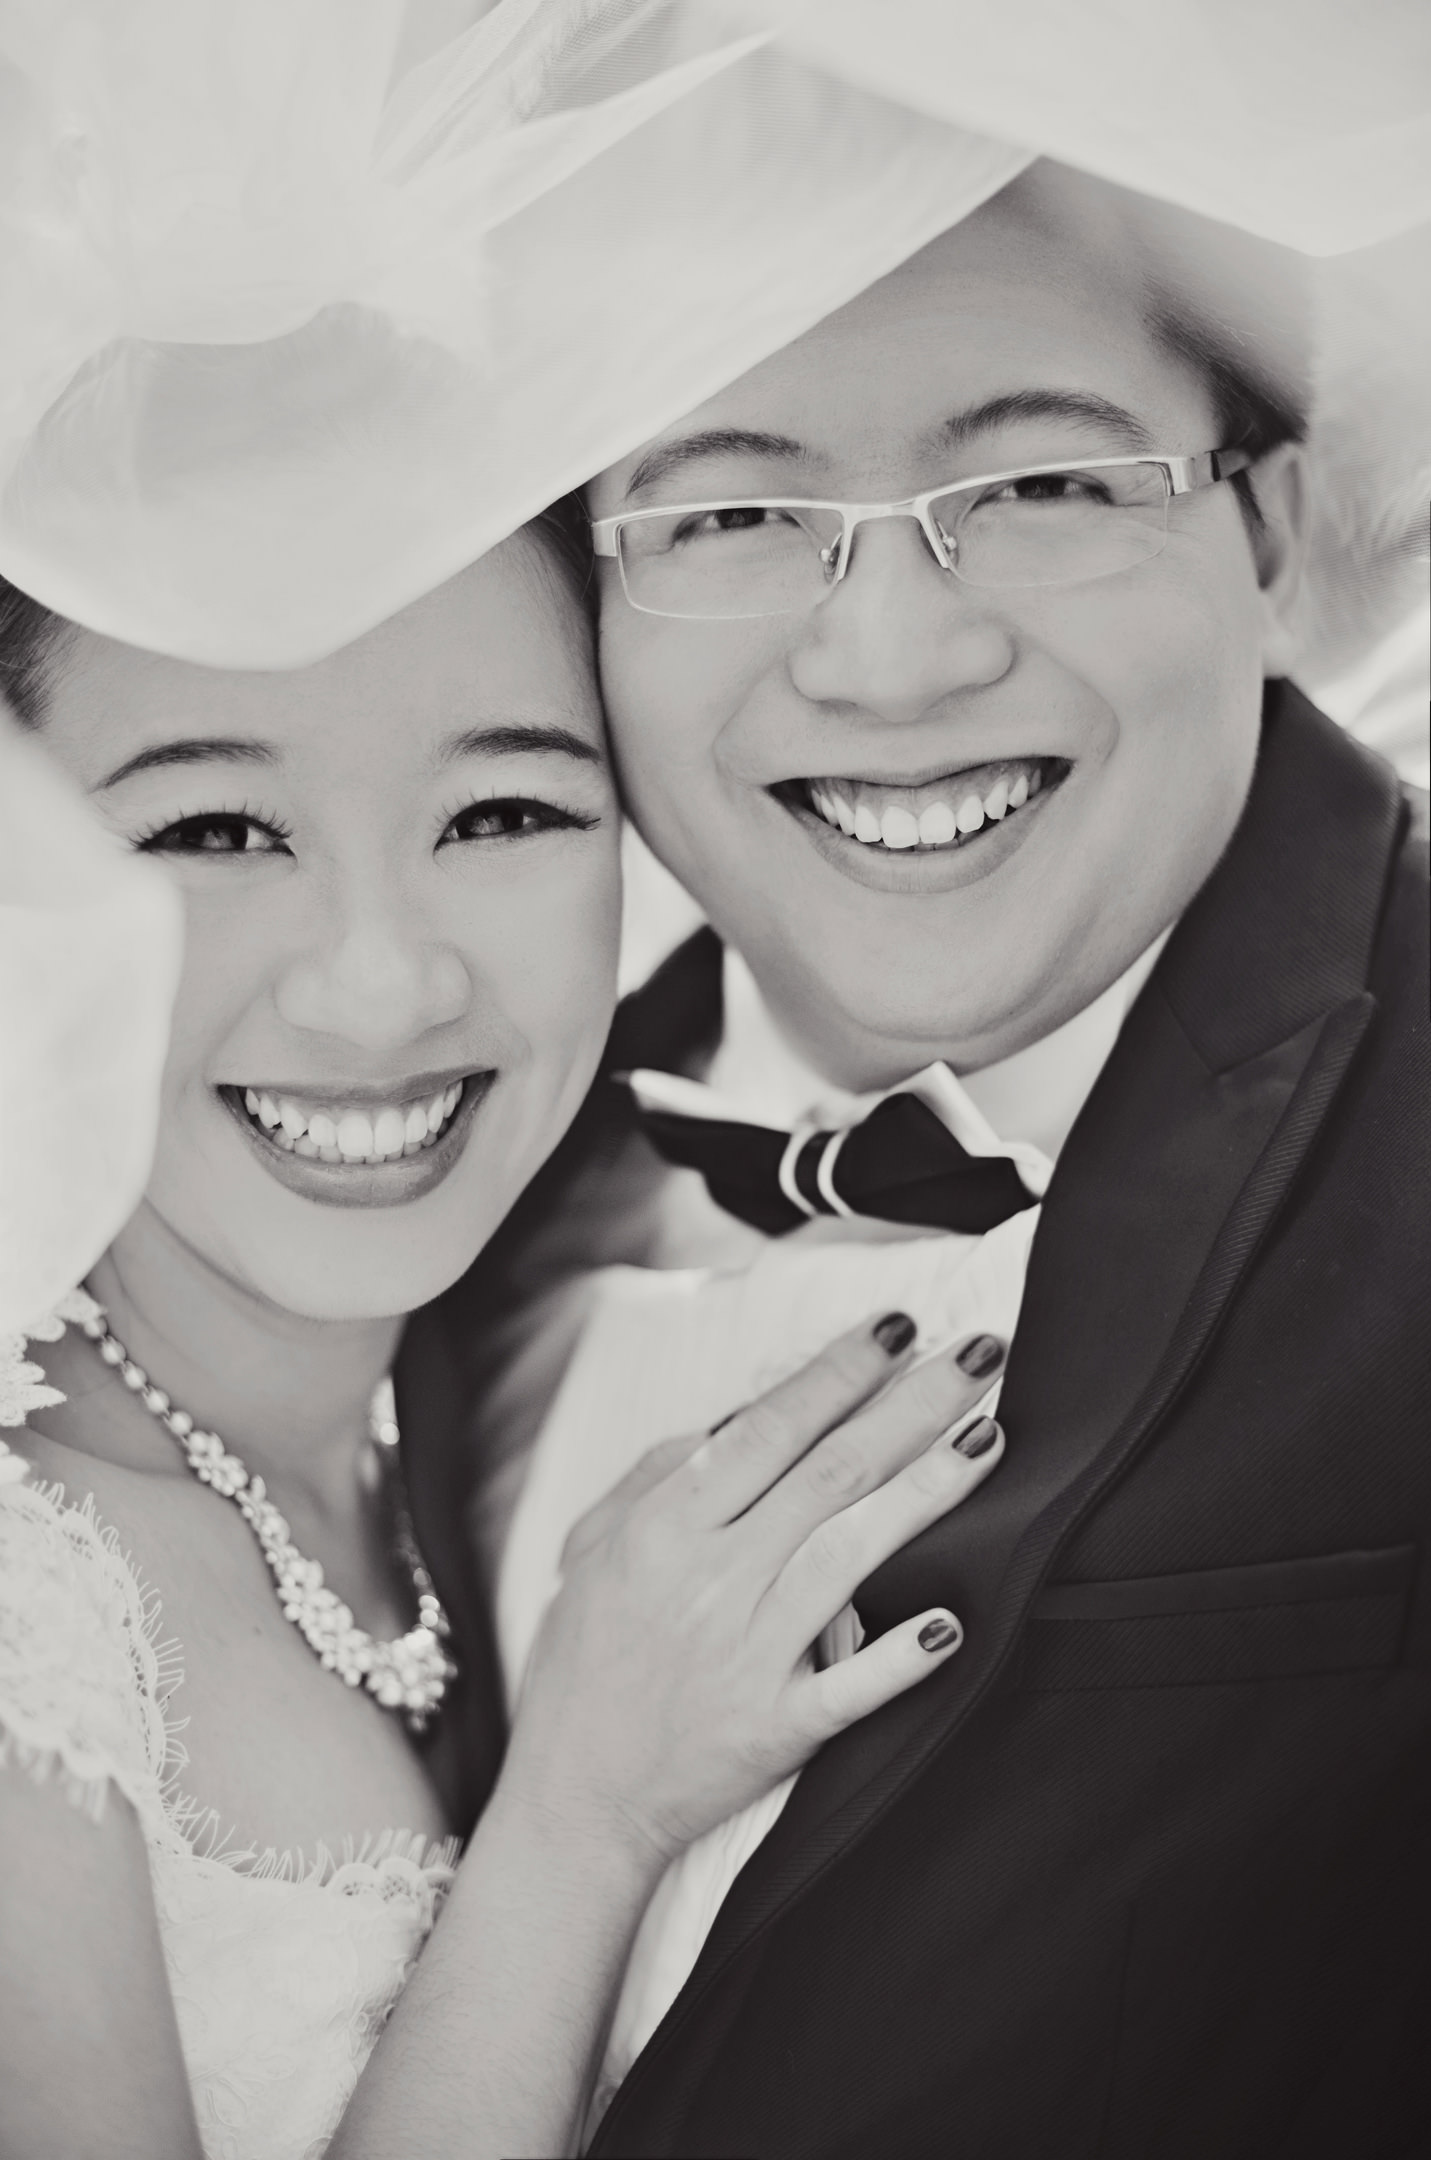 Chris_Hui_婚禮_婚紗照_pre_wedding_photography_best_031_.jpg